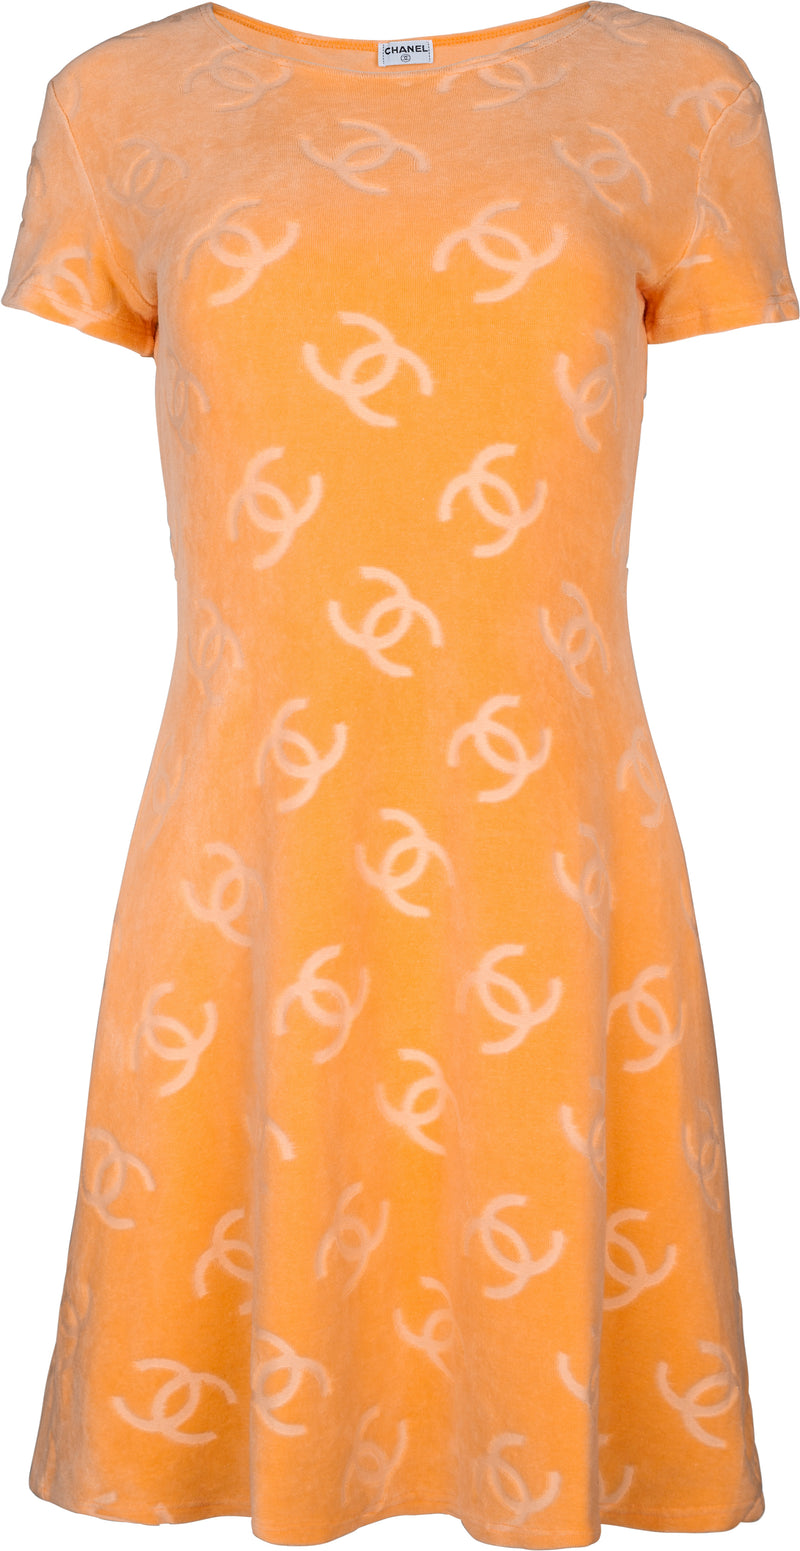 Chanel Tangerine Velour Logo Spring 1996 Mini Dress